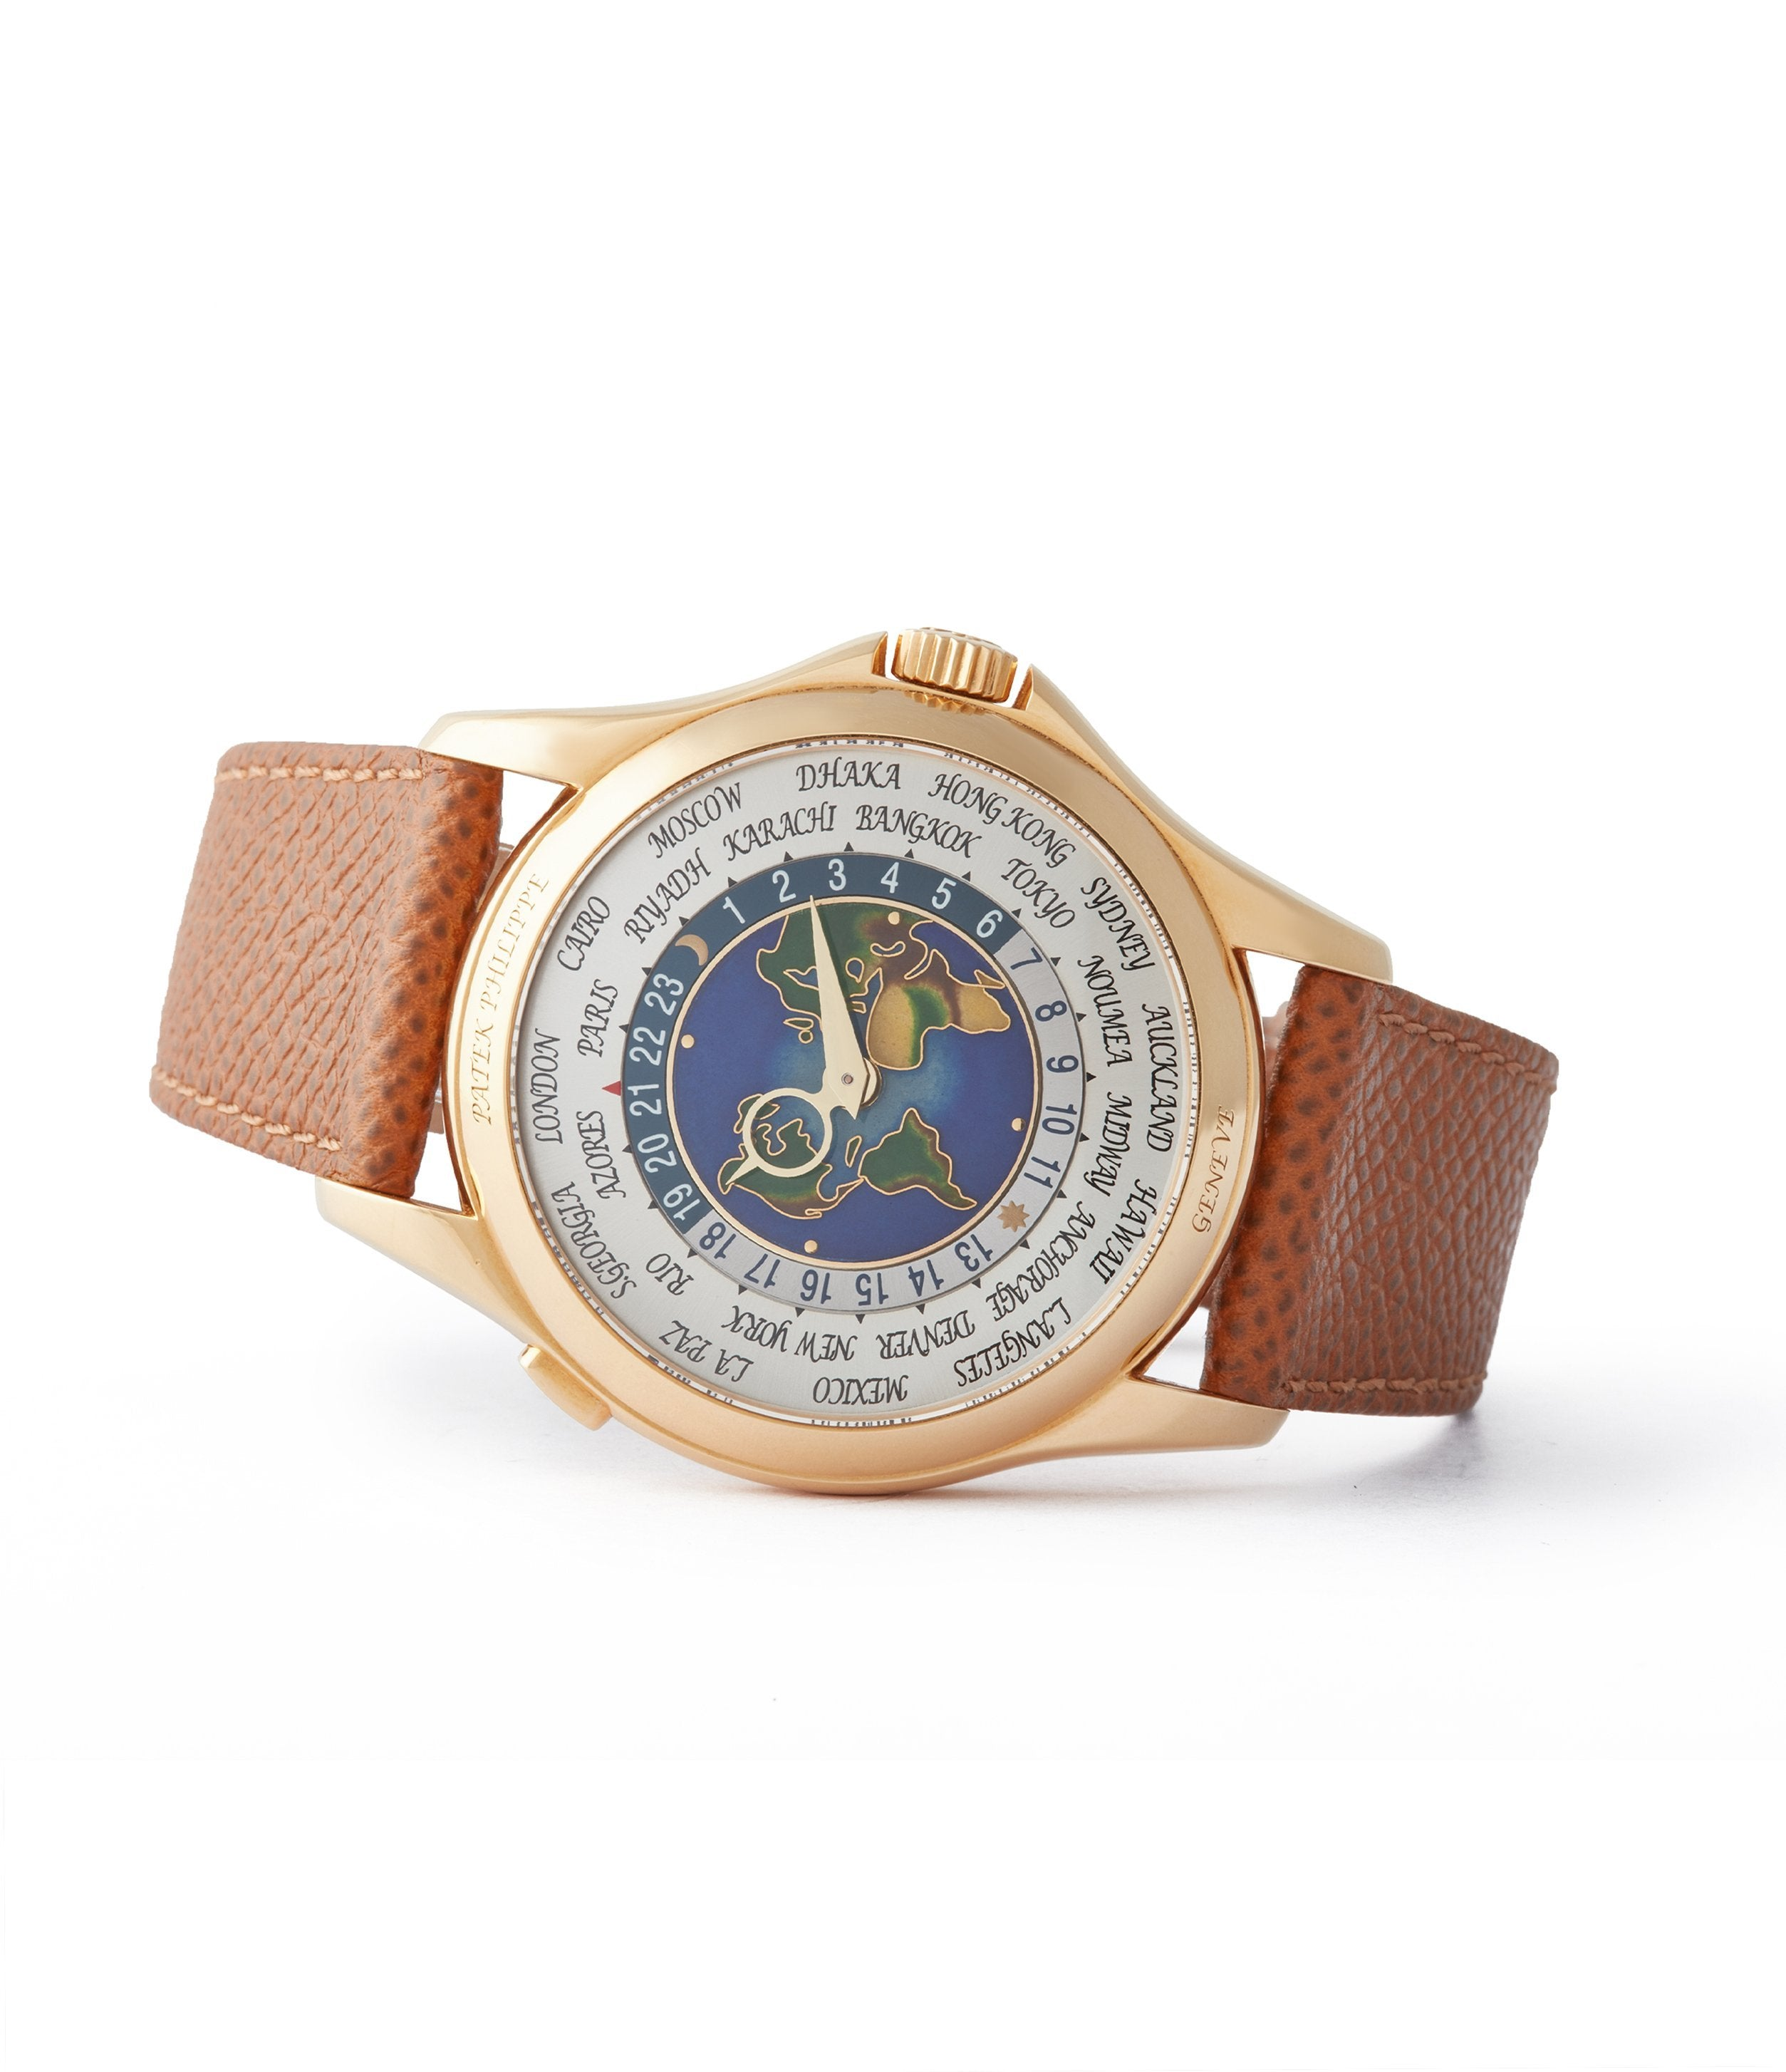 side-shot shop preowned Patek Philippe 5131J-014 World Time yellow gold enamel dial traveller watch for sale online A Collected Man London UK specialist rare watches